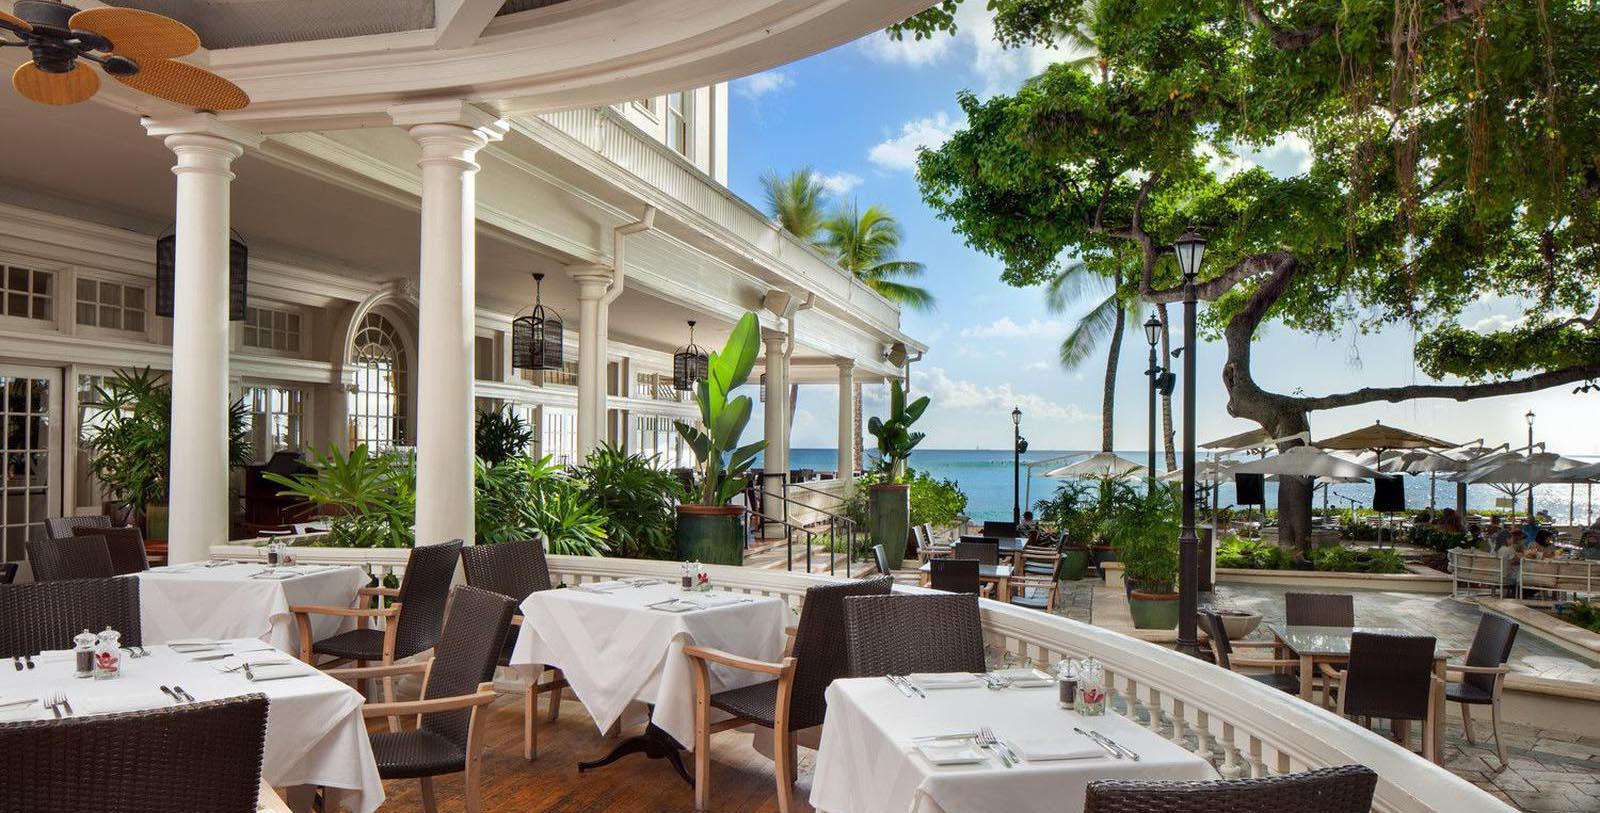 Image of Moana Oceanfront Restaurant, Moana Surfrider, A Westin Resort & Spa, Honolulu, Hawaii, 1901, Member of Historic Hotels of America, Taste